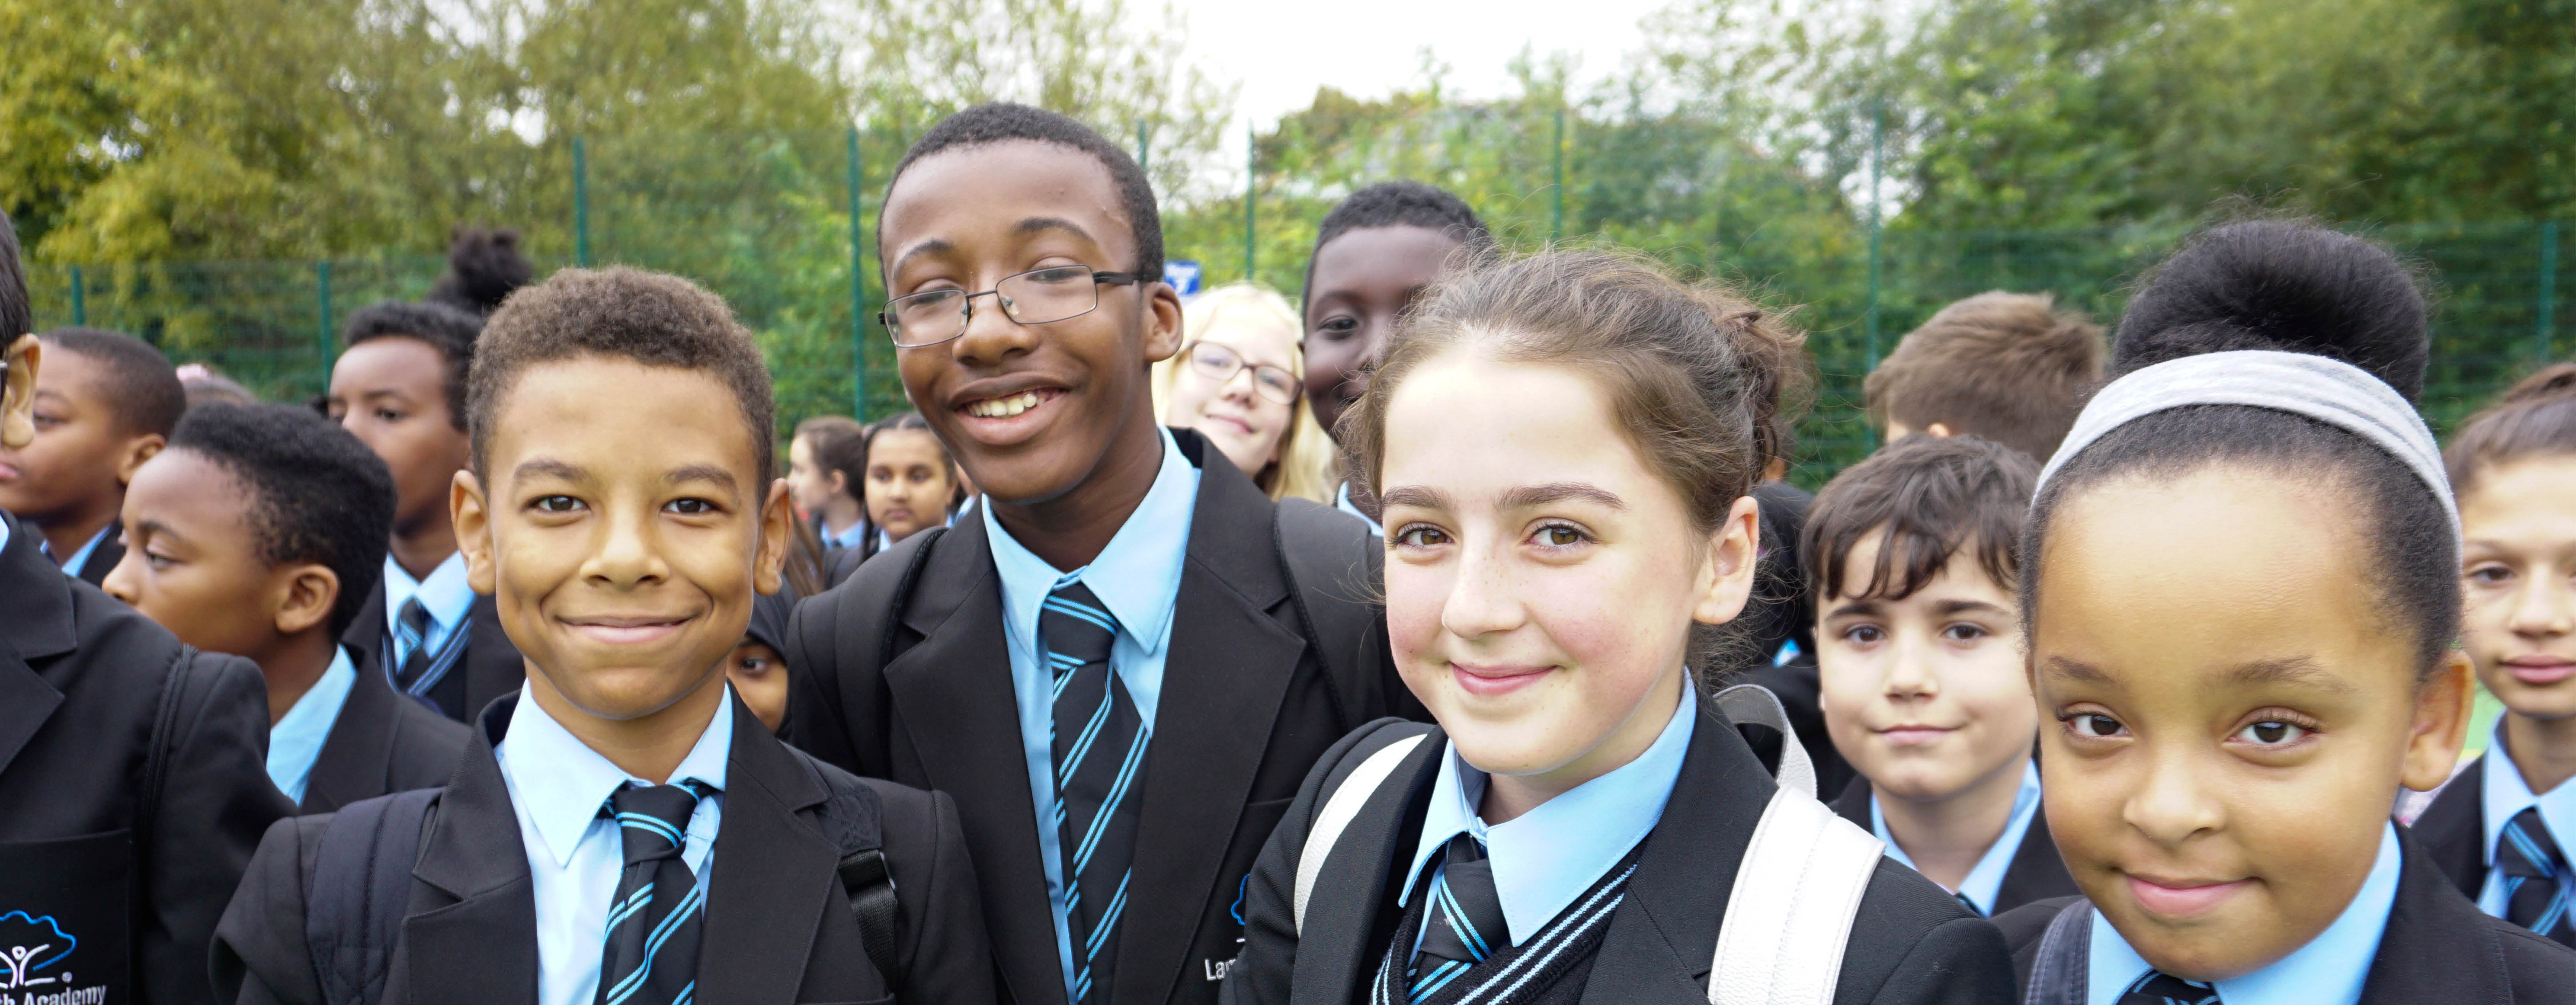 Lambeth Academy Students Celebration being GOOD in our Ofsted Inspection